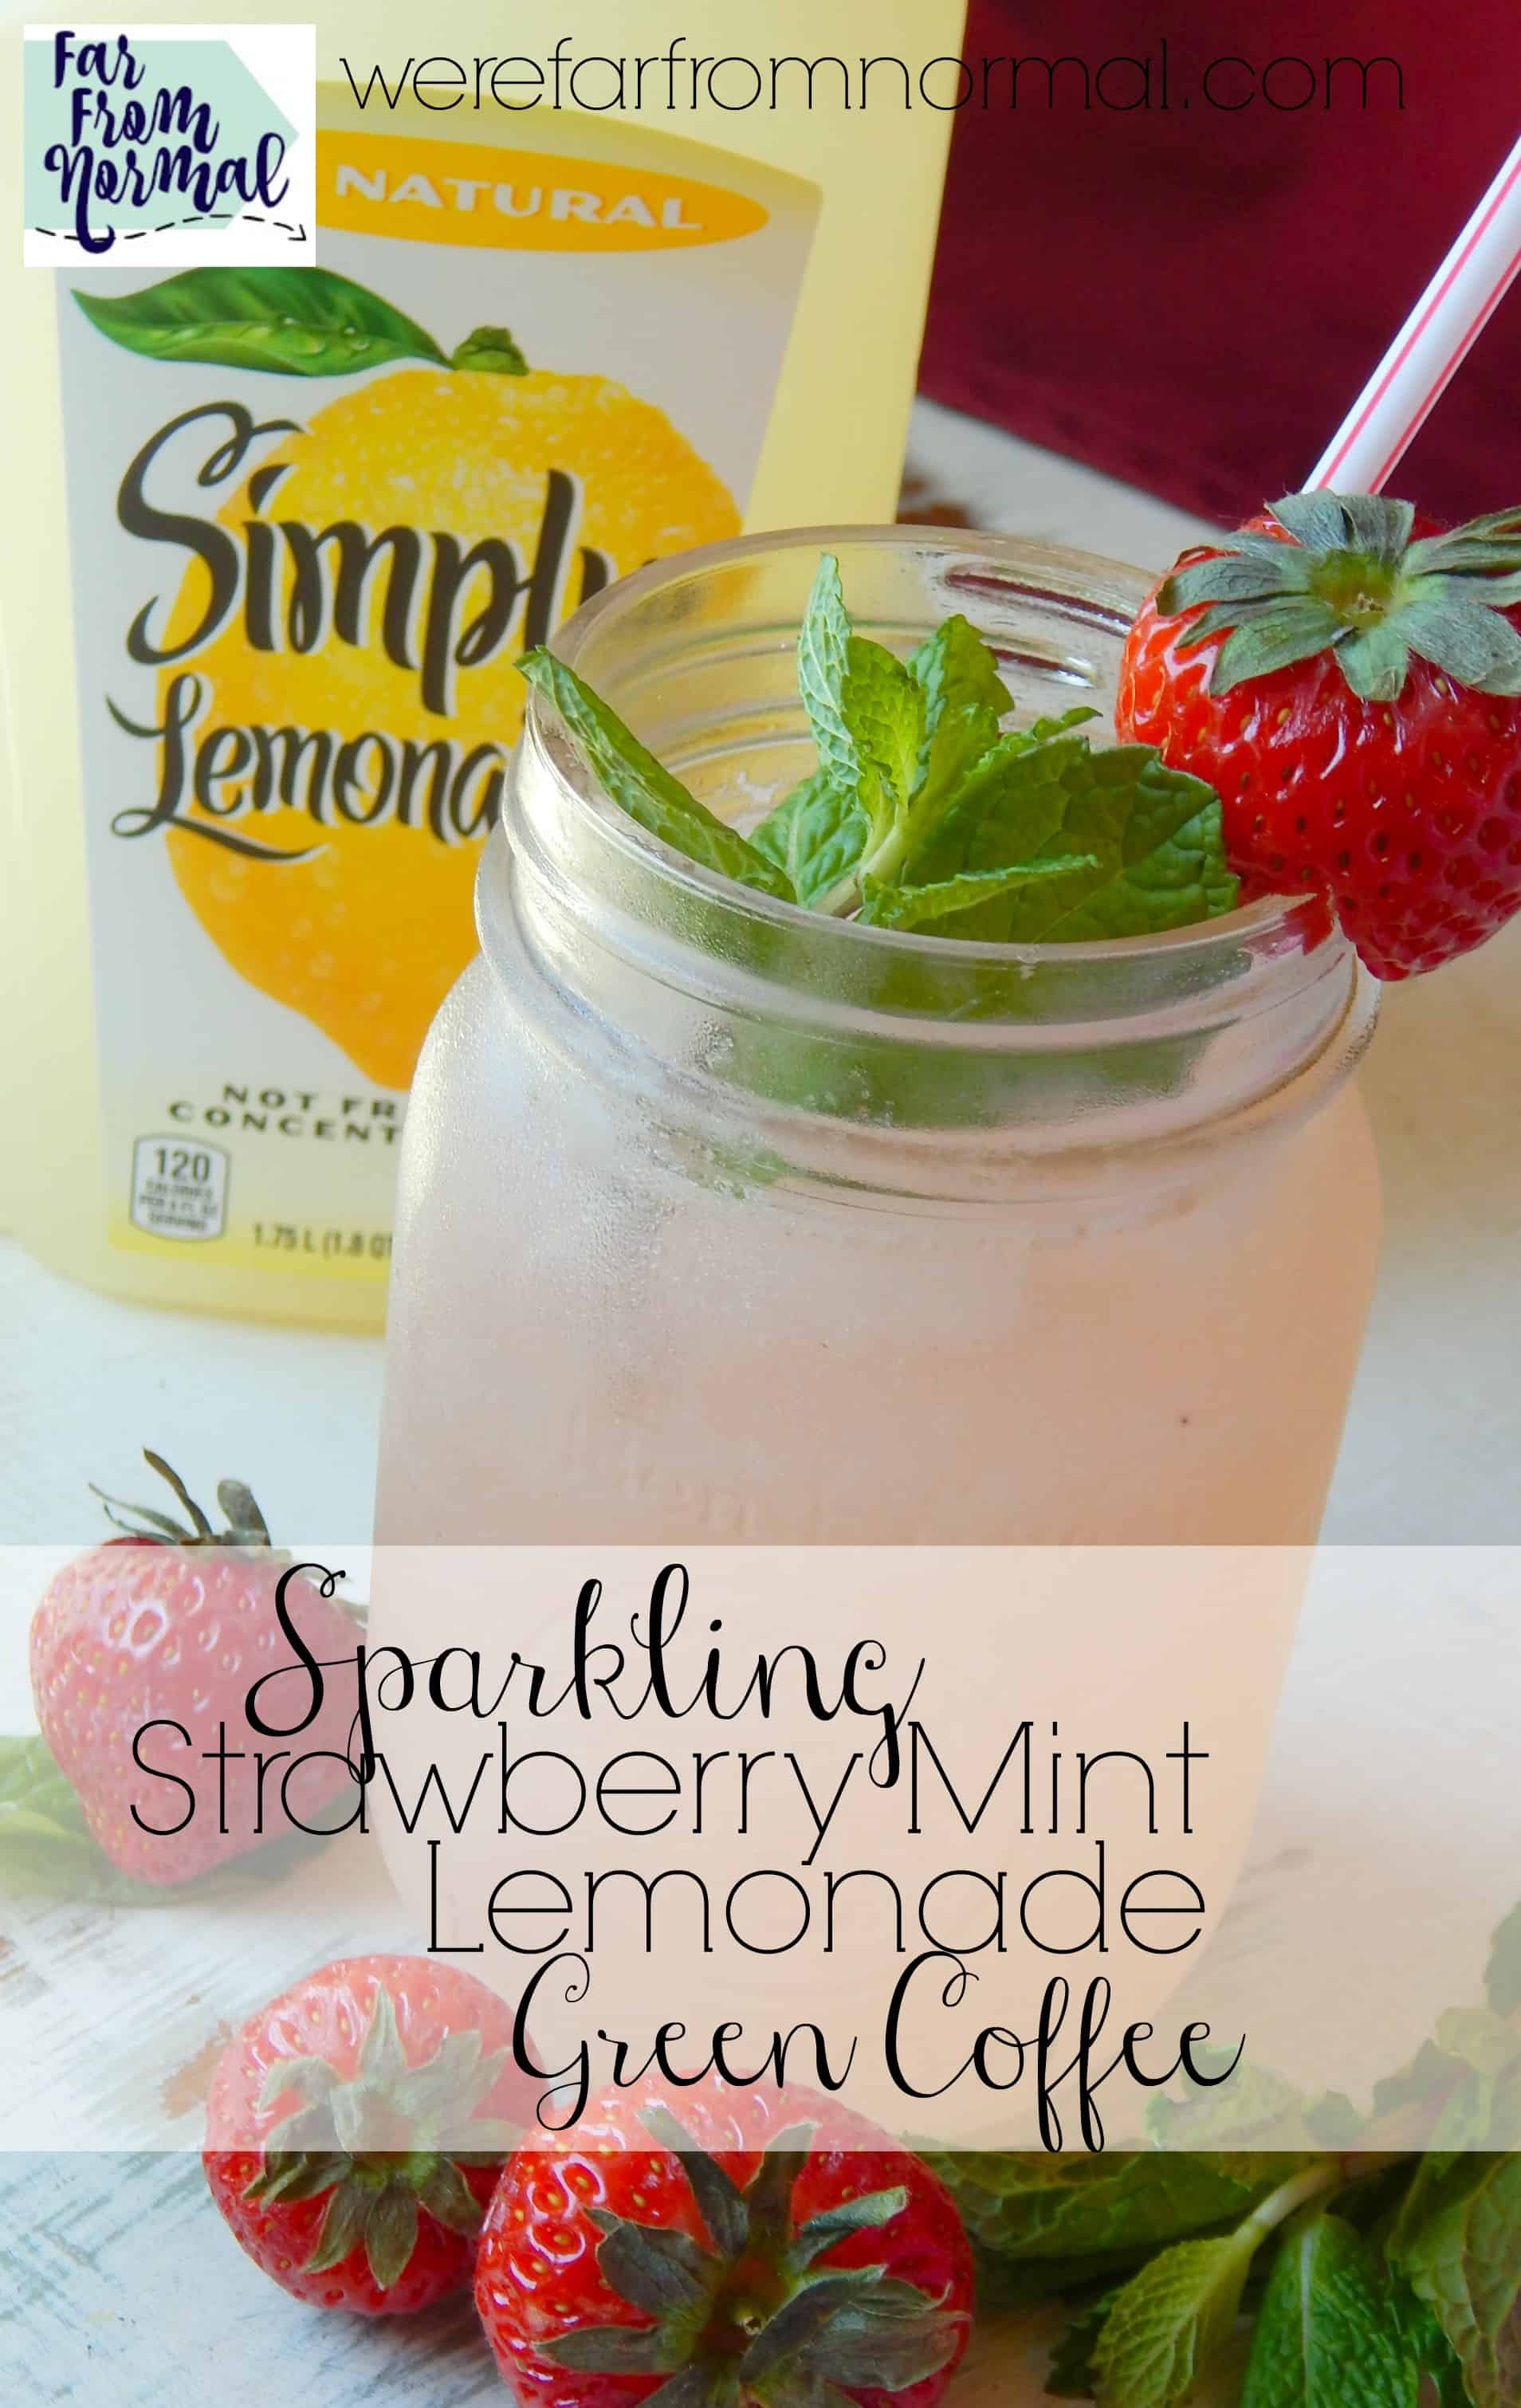 Sparkling Strawberry Mint Lemonade Green Coffee